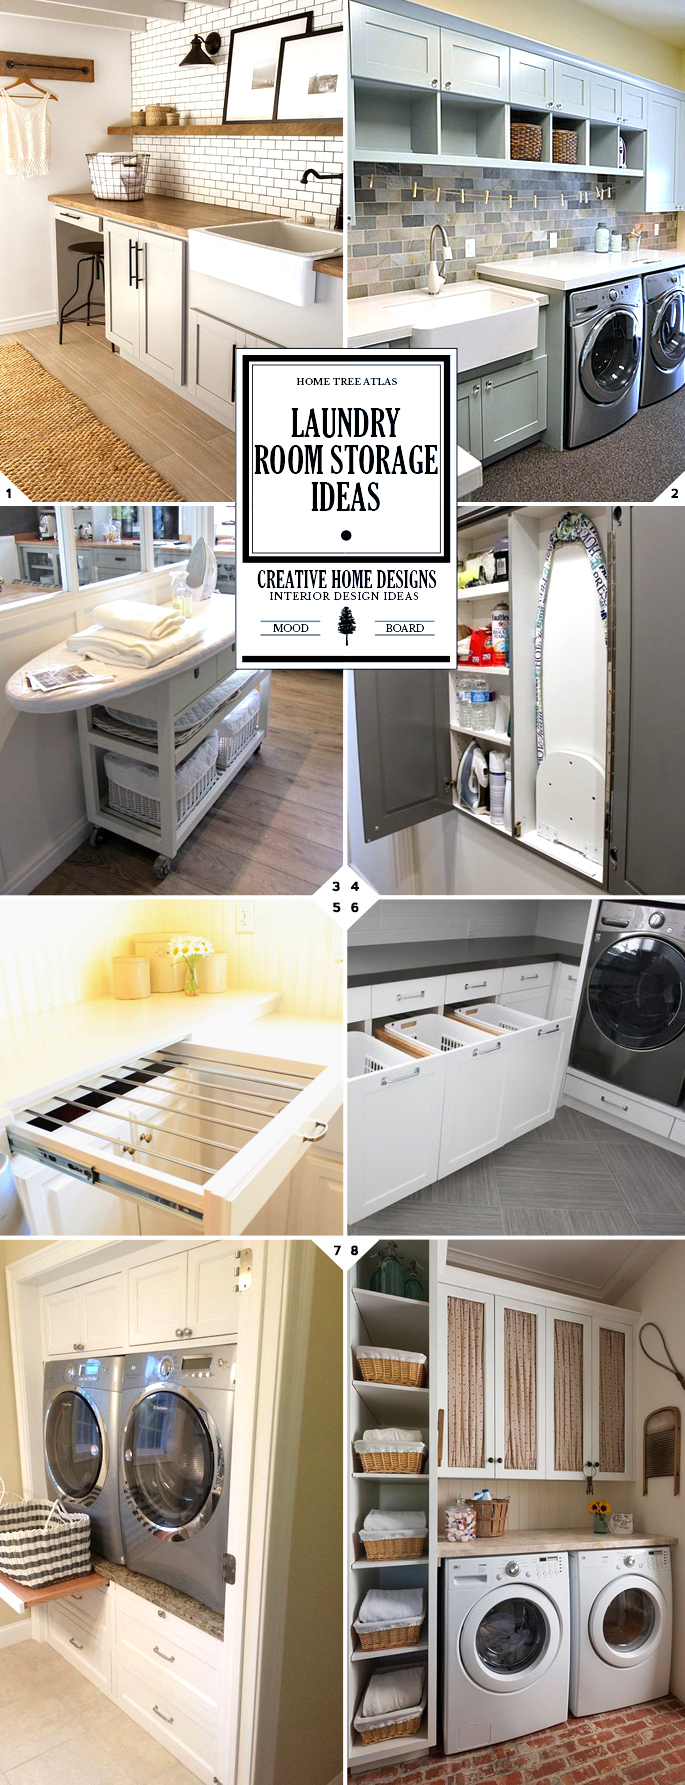 Laundry Room Storage Ideas and Organization Solutions